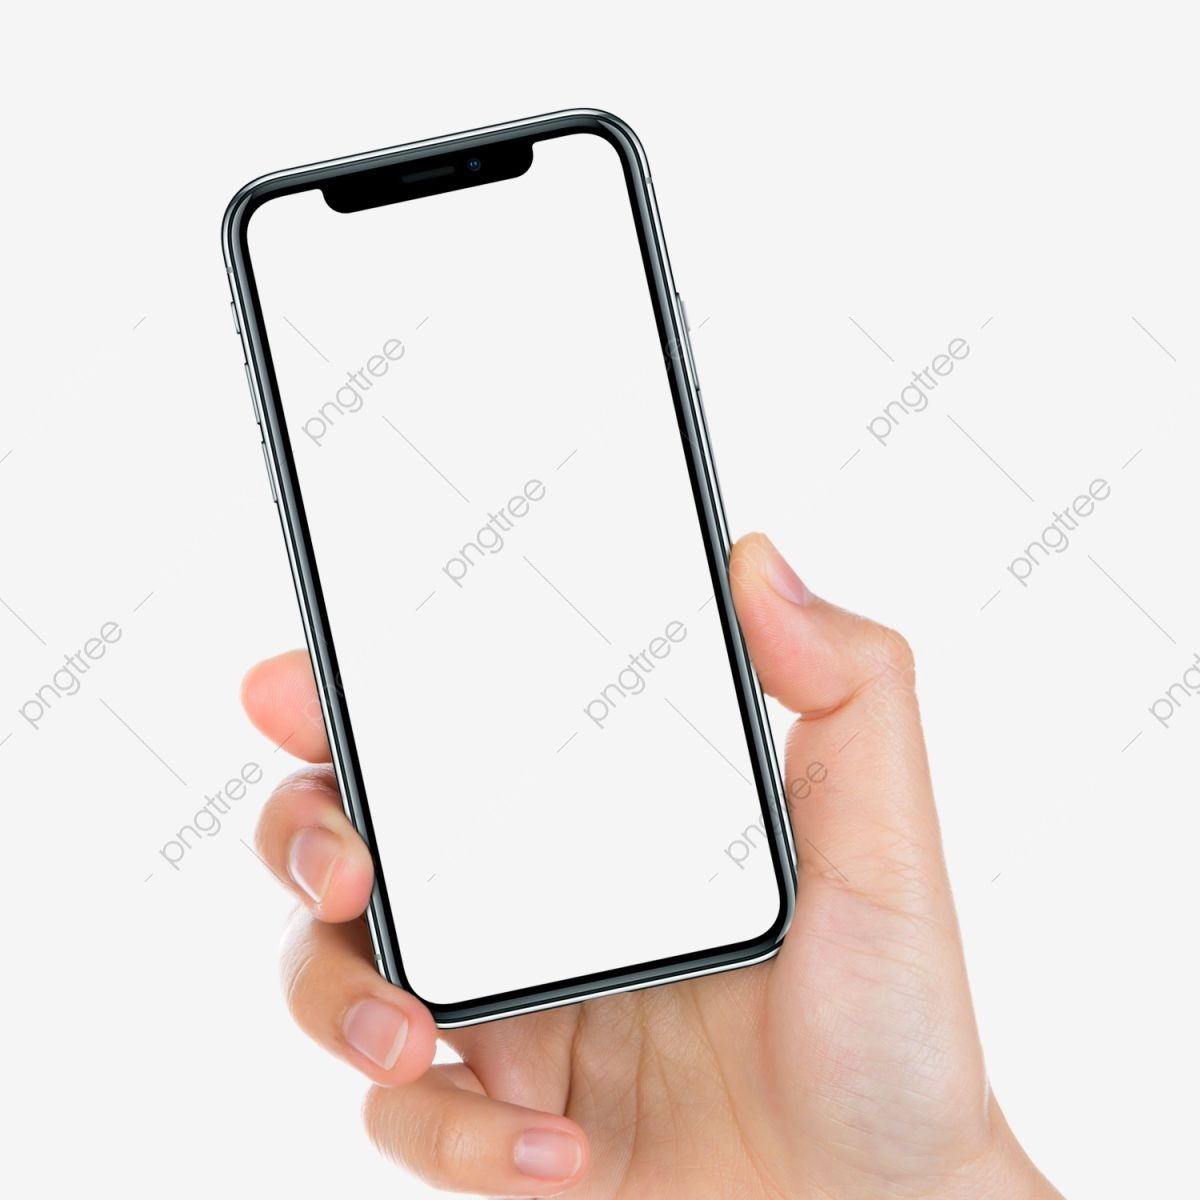 Iphone X In Hand Mockup Mobile Phone Replenishing Png Transparent Clipart Image And Psd File For Free Download Iphone Clip Art Phone